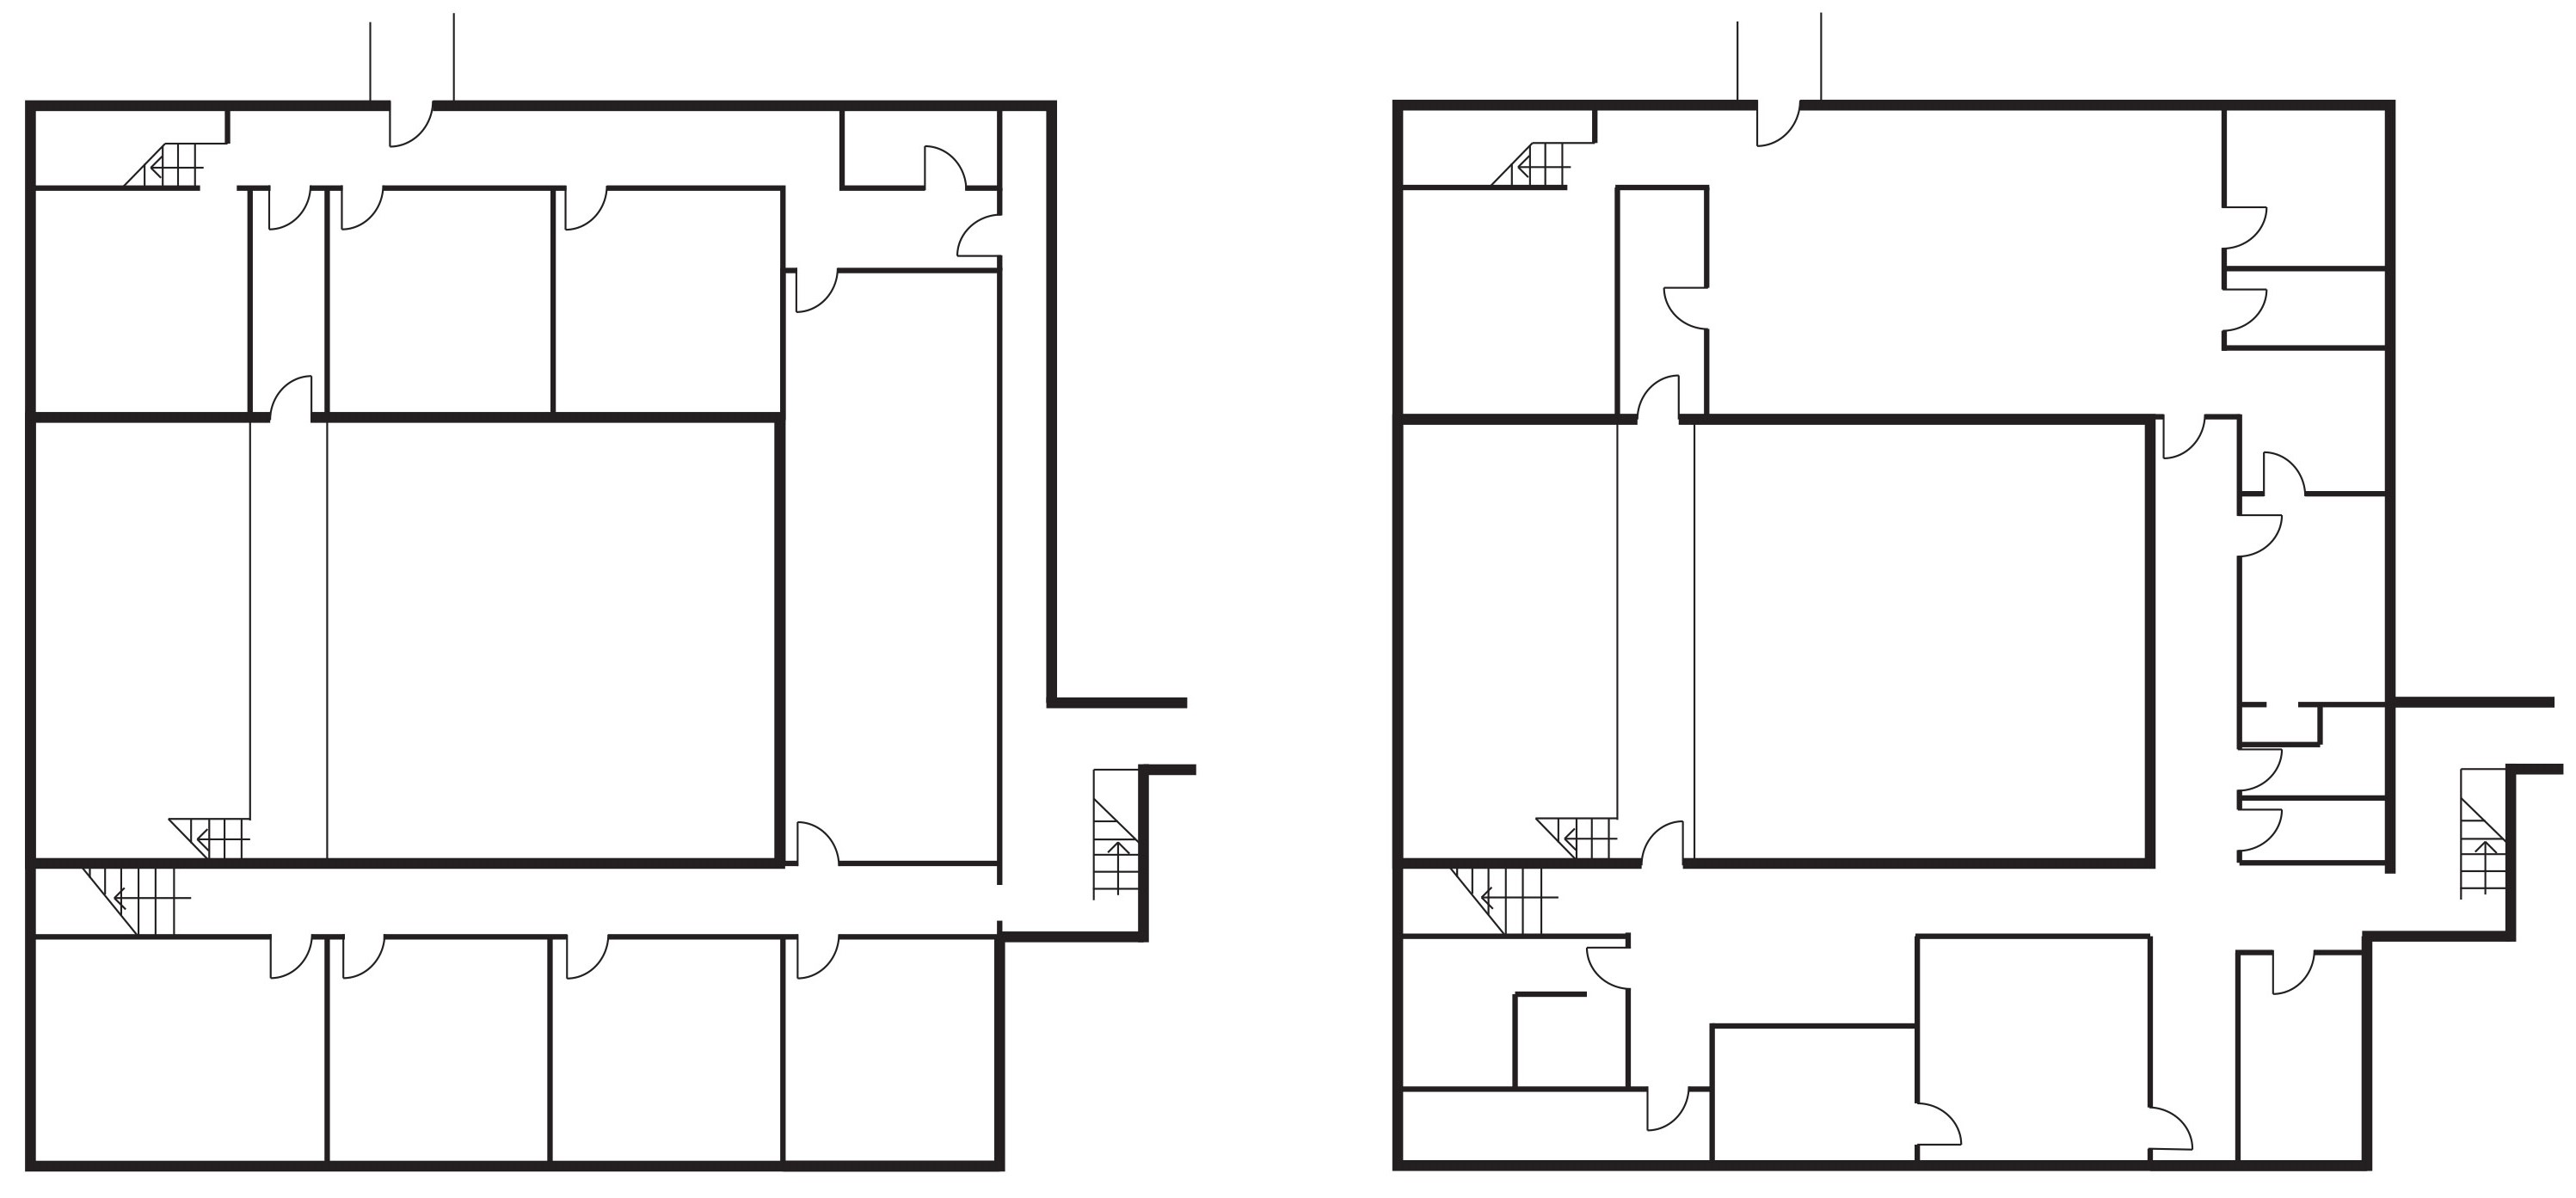 Family Room Layout Small Spaces